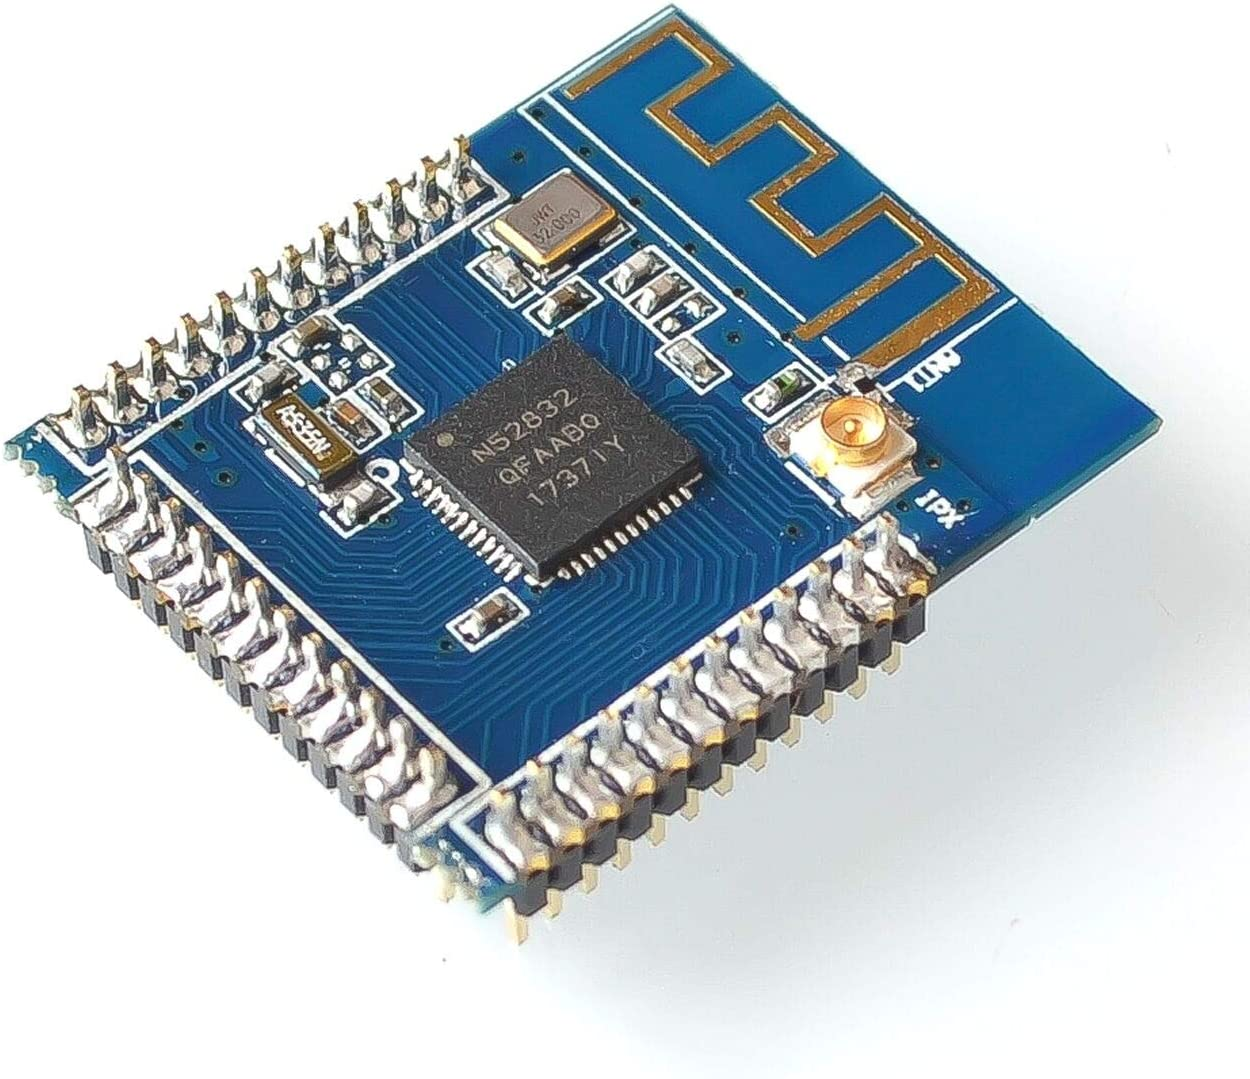 WINGONEER NRF52832 Bluetooth Module BLE 4.2 Low Power Bluetooth External Antenna IPEX Support Multi-Protocol